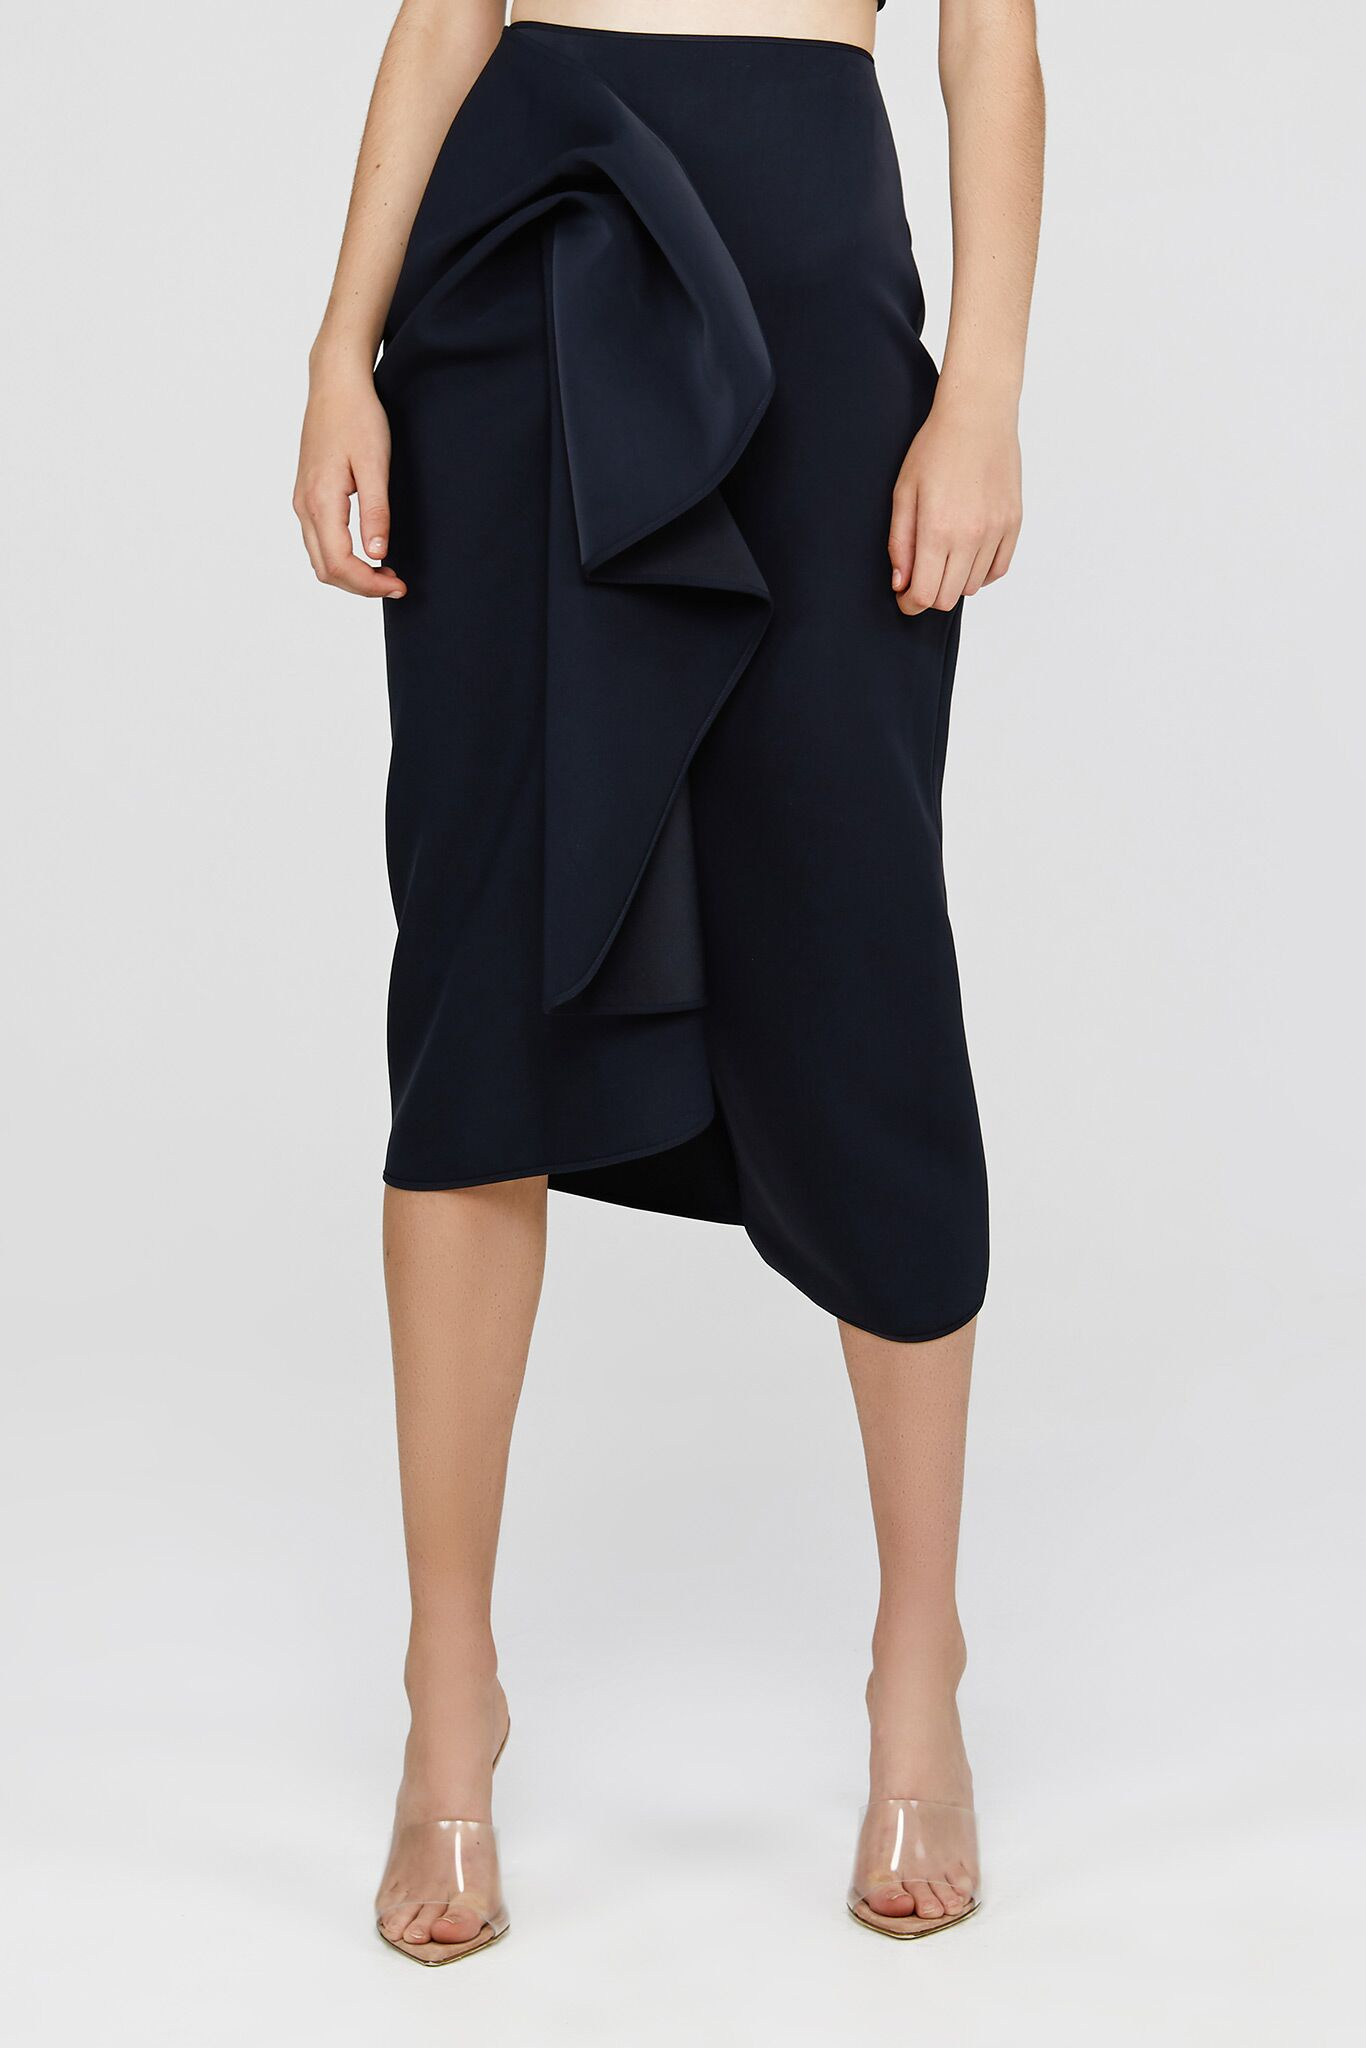 Acler Crawford Skirt in Ink